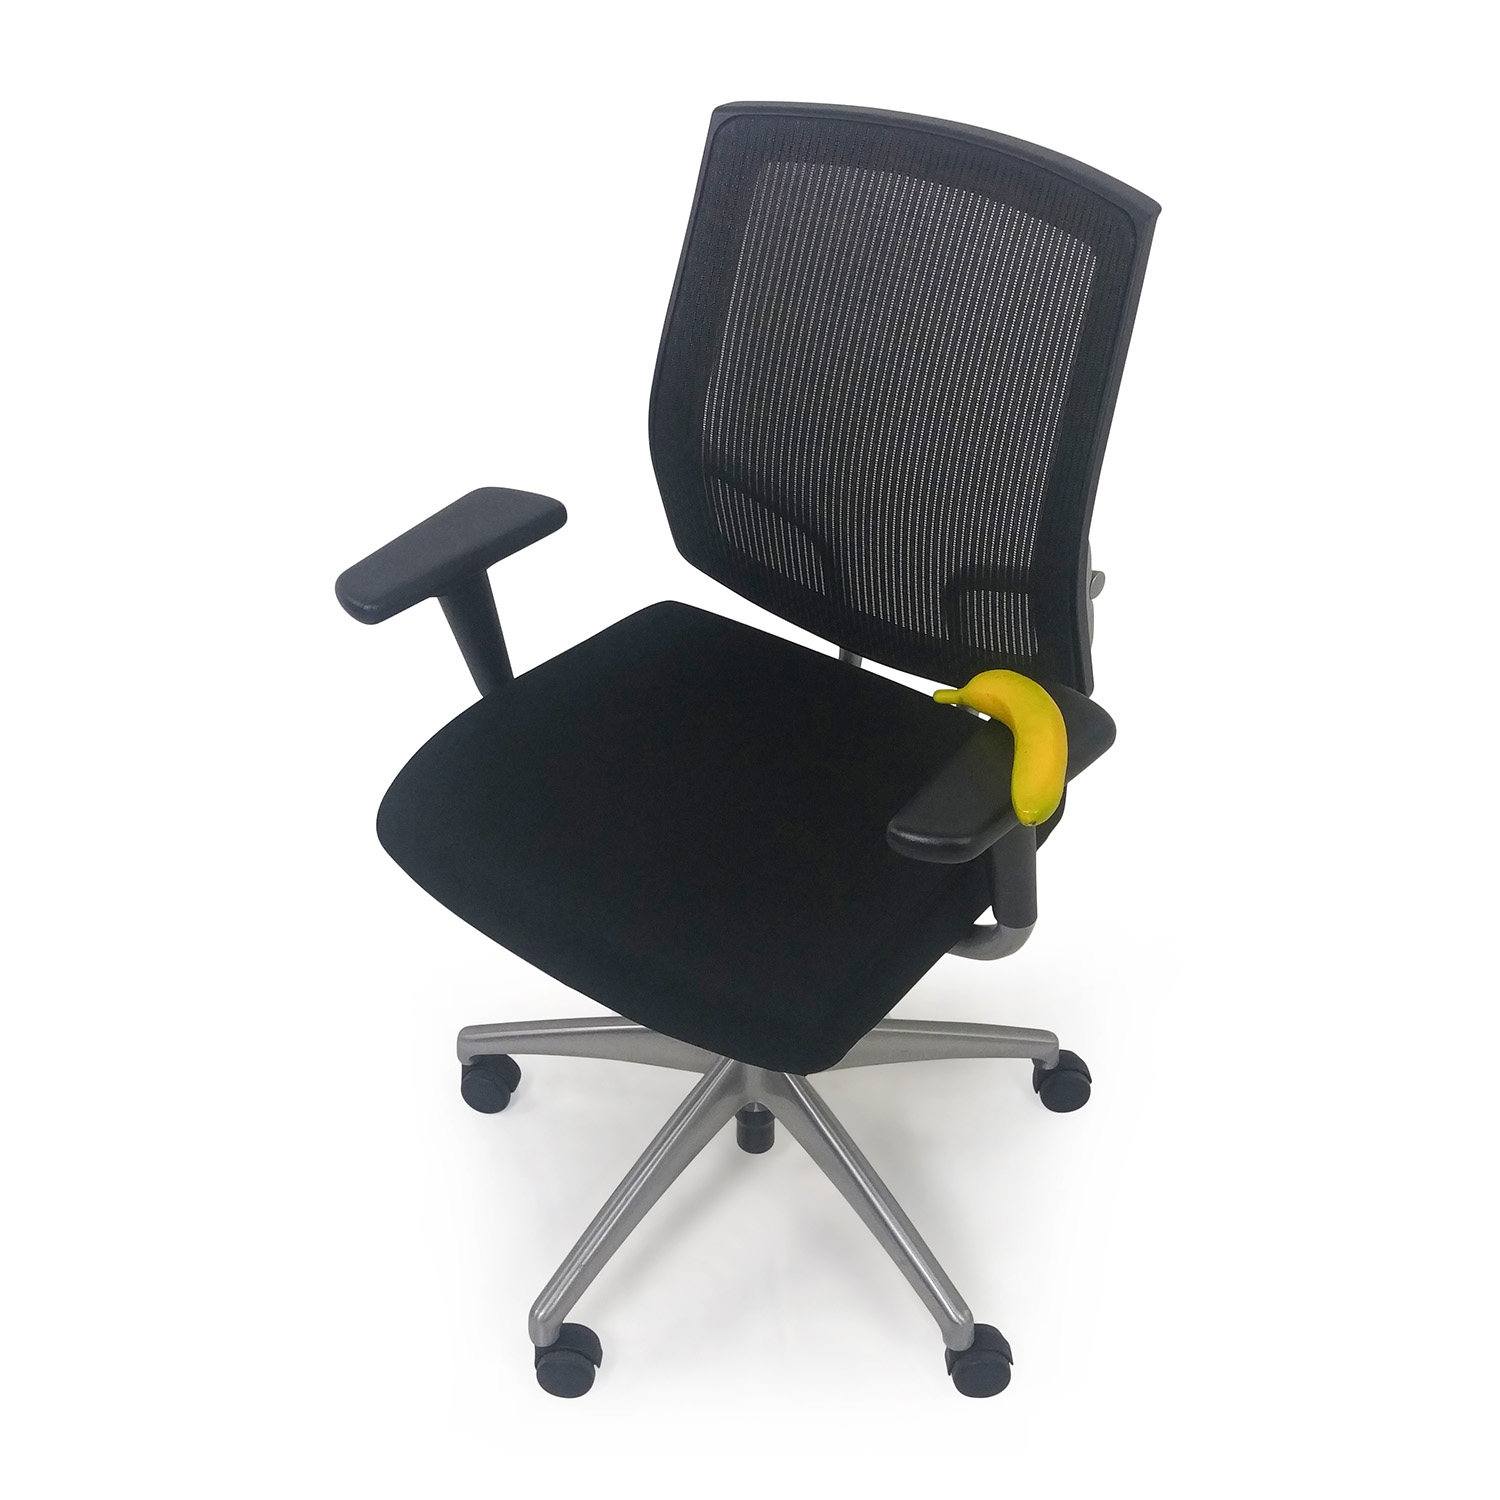 Sitonit Seating Sitonit Seating Mesh Swivel Chair dimensions